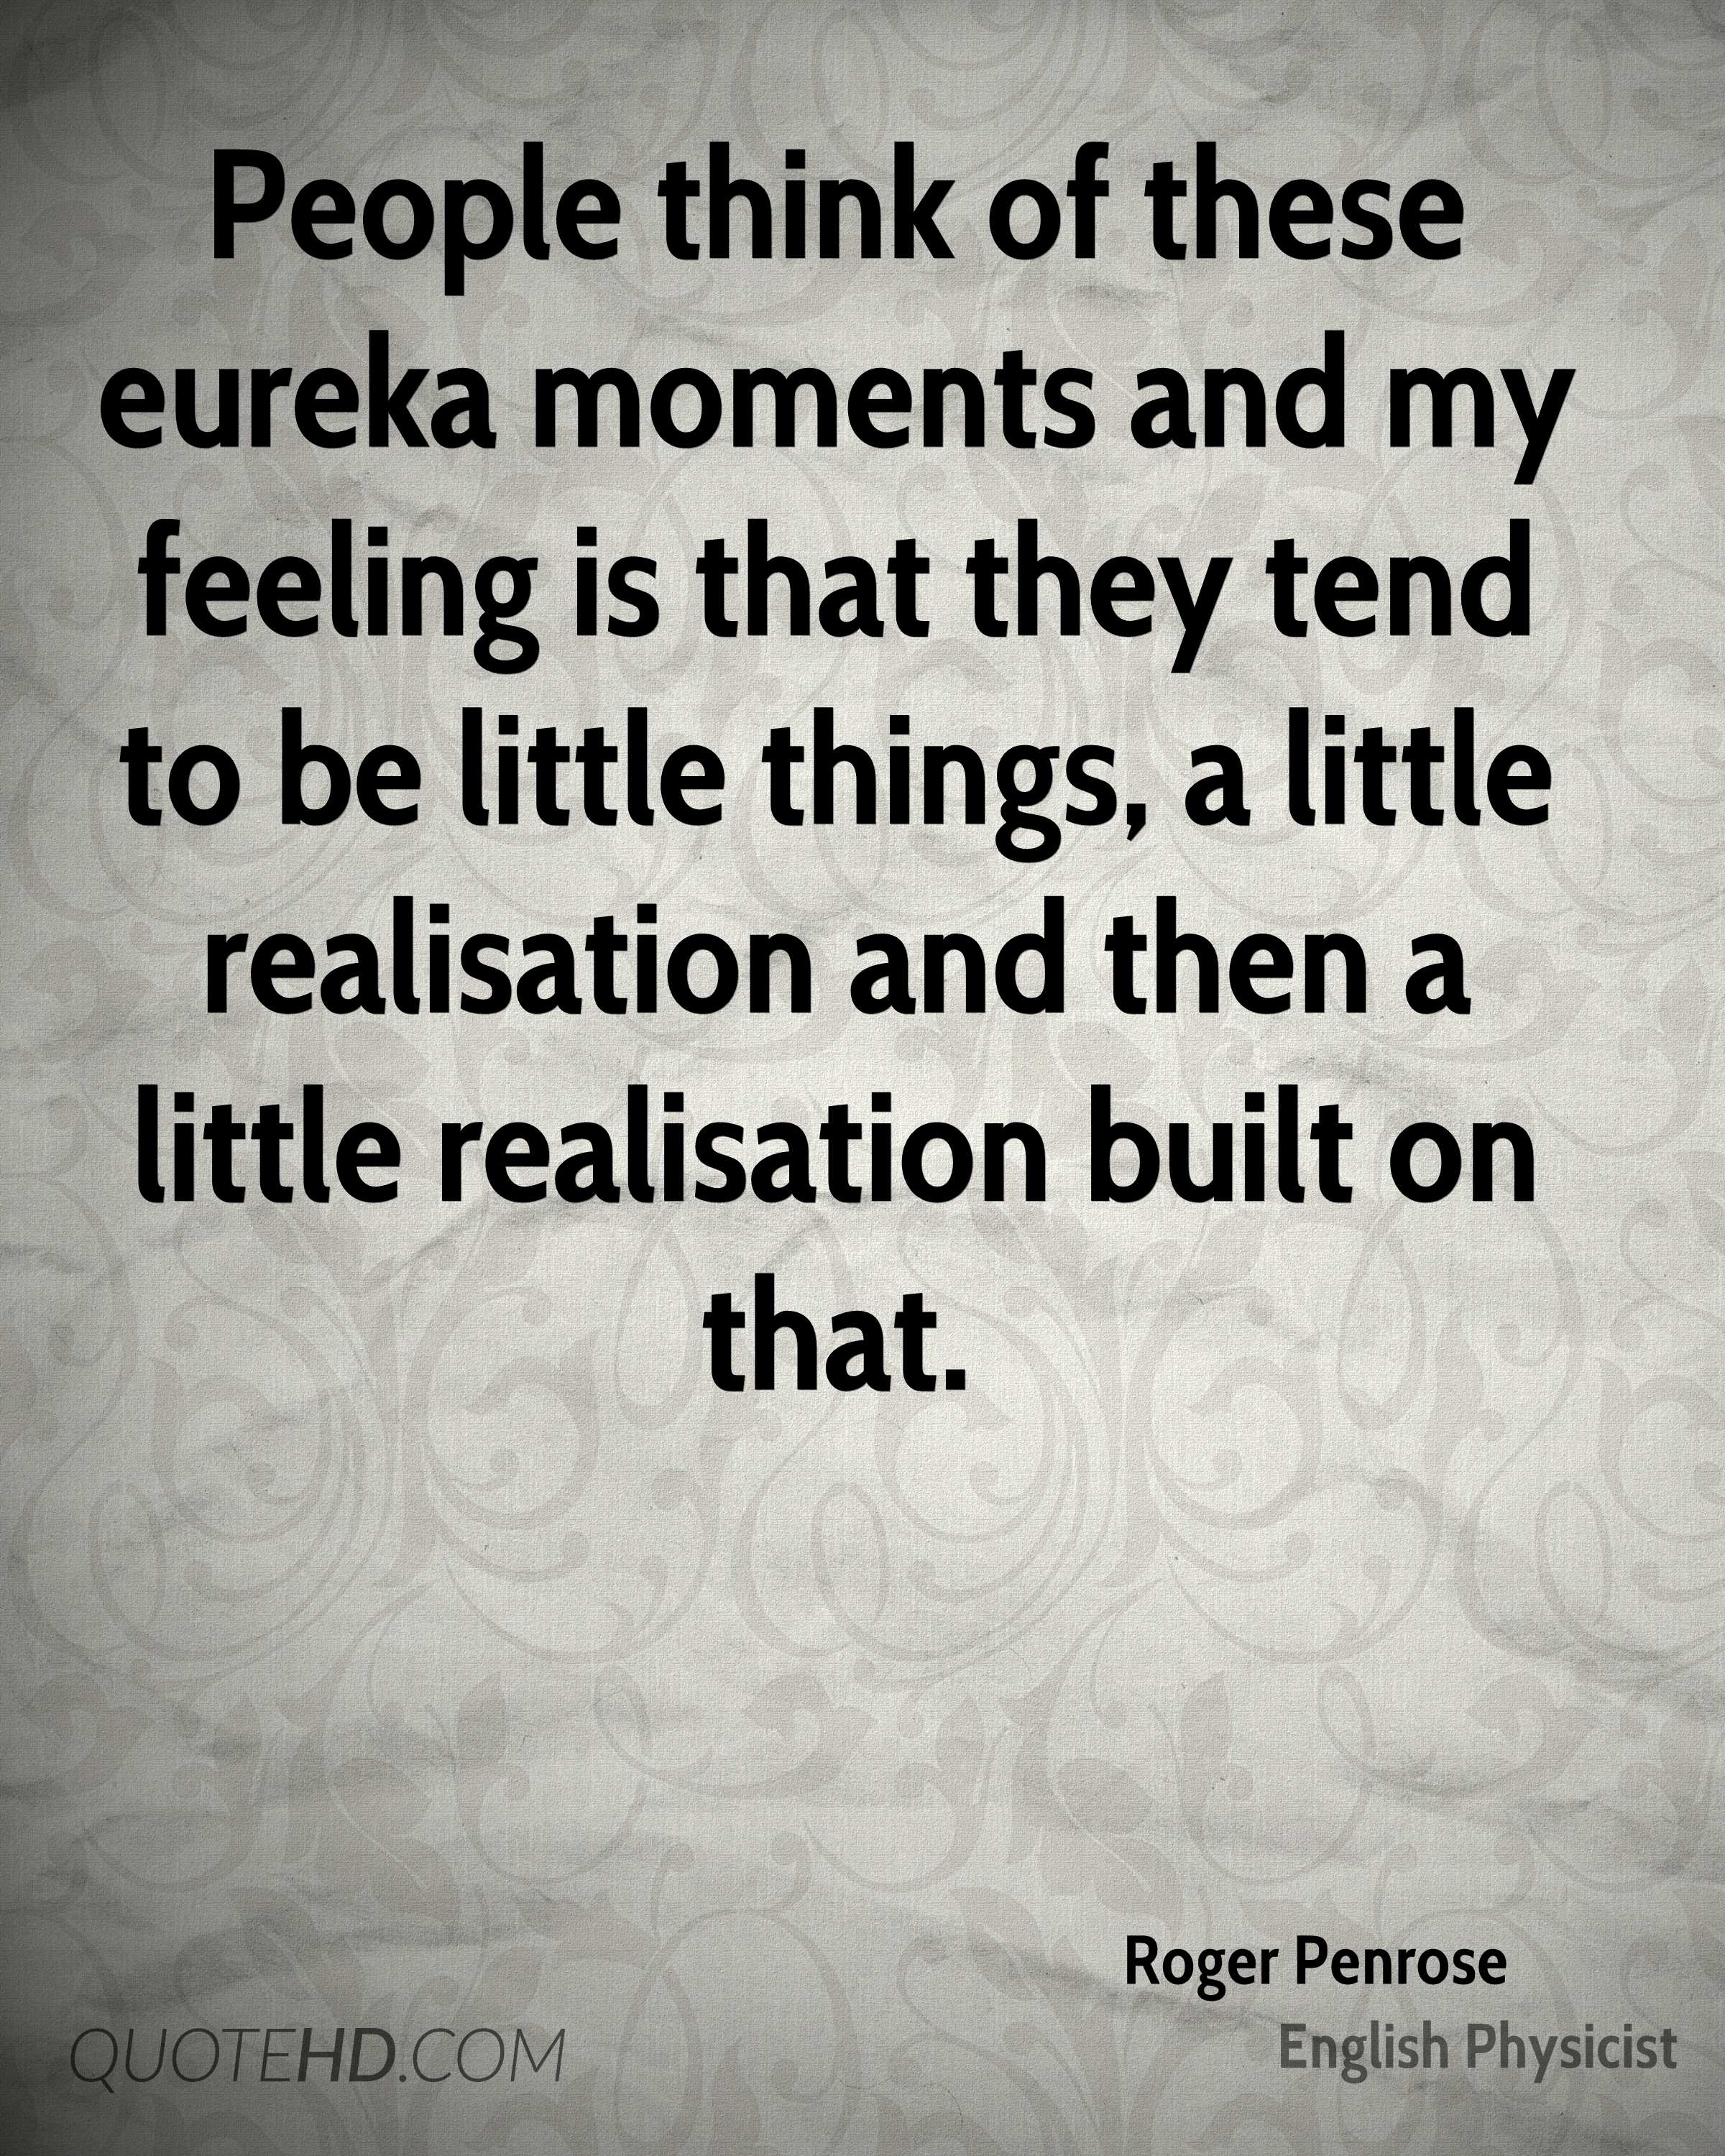 People think of these eureka moments and my feeling is that they tend to be little things, a little realisation and then a little realisation built on that.